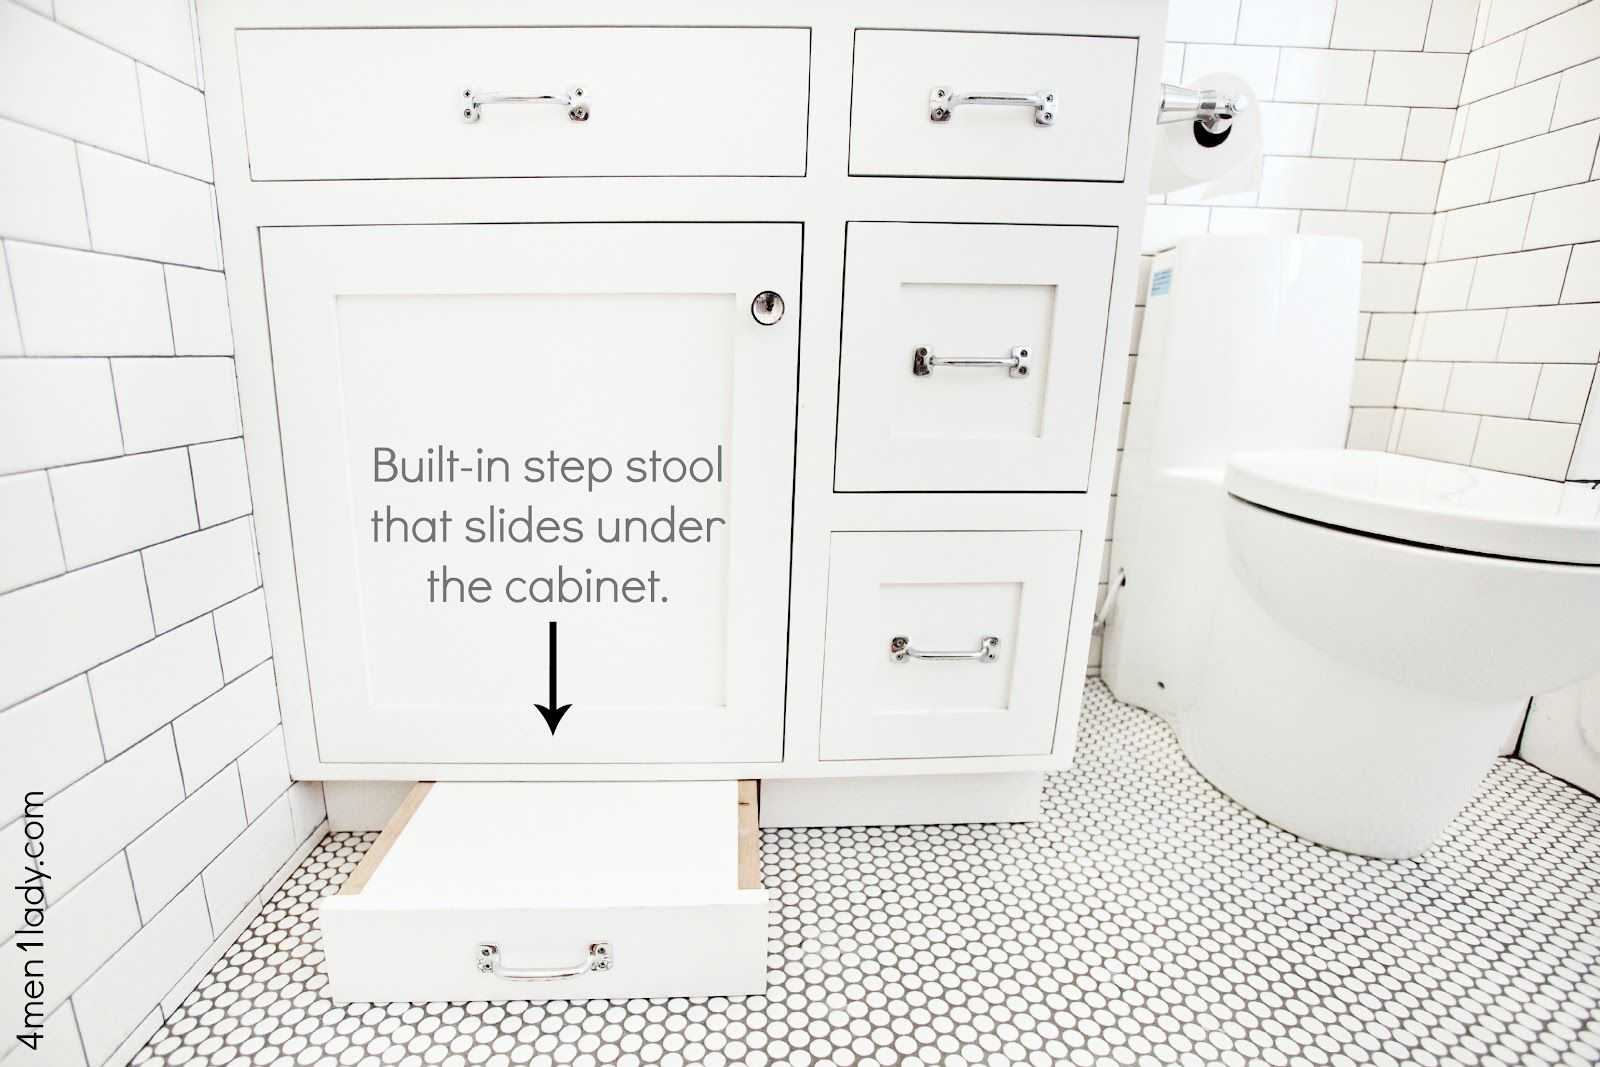 Built In Step Stool That Slides Under The Cabinet 4 Men 1 Lady